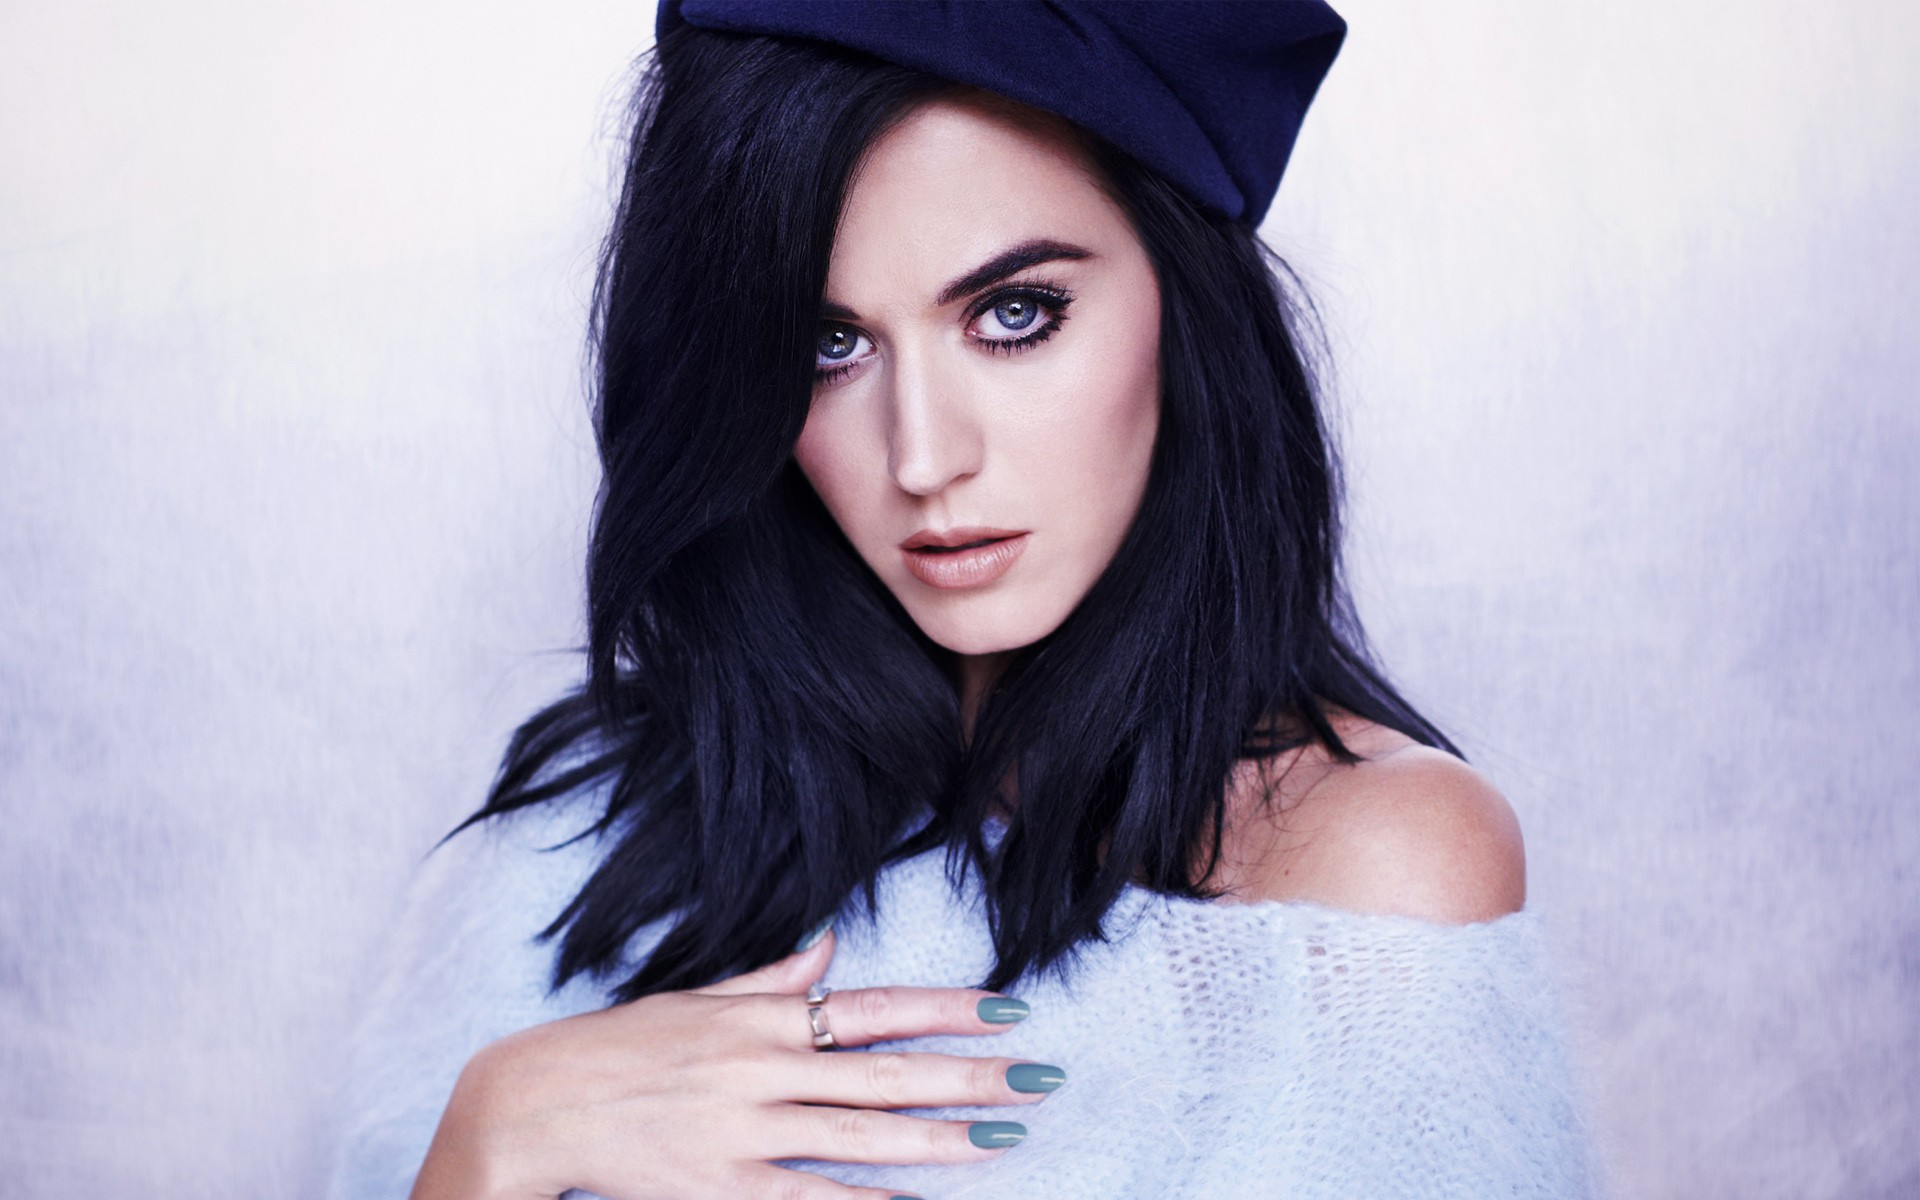 Katy Perry first artist on Twitter with 100 million followers